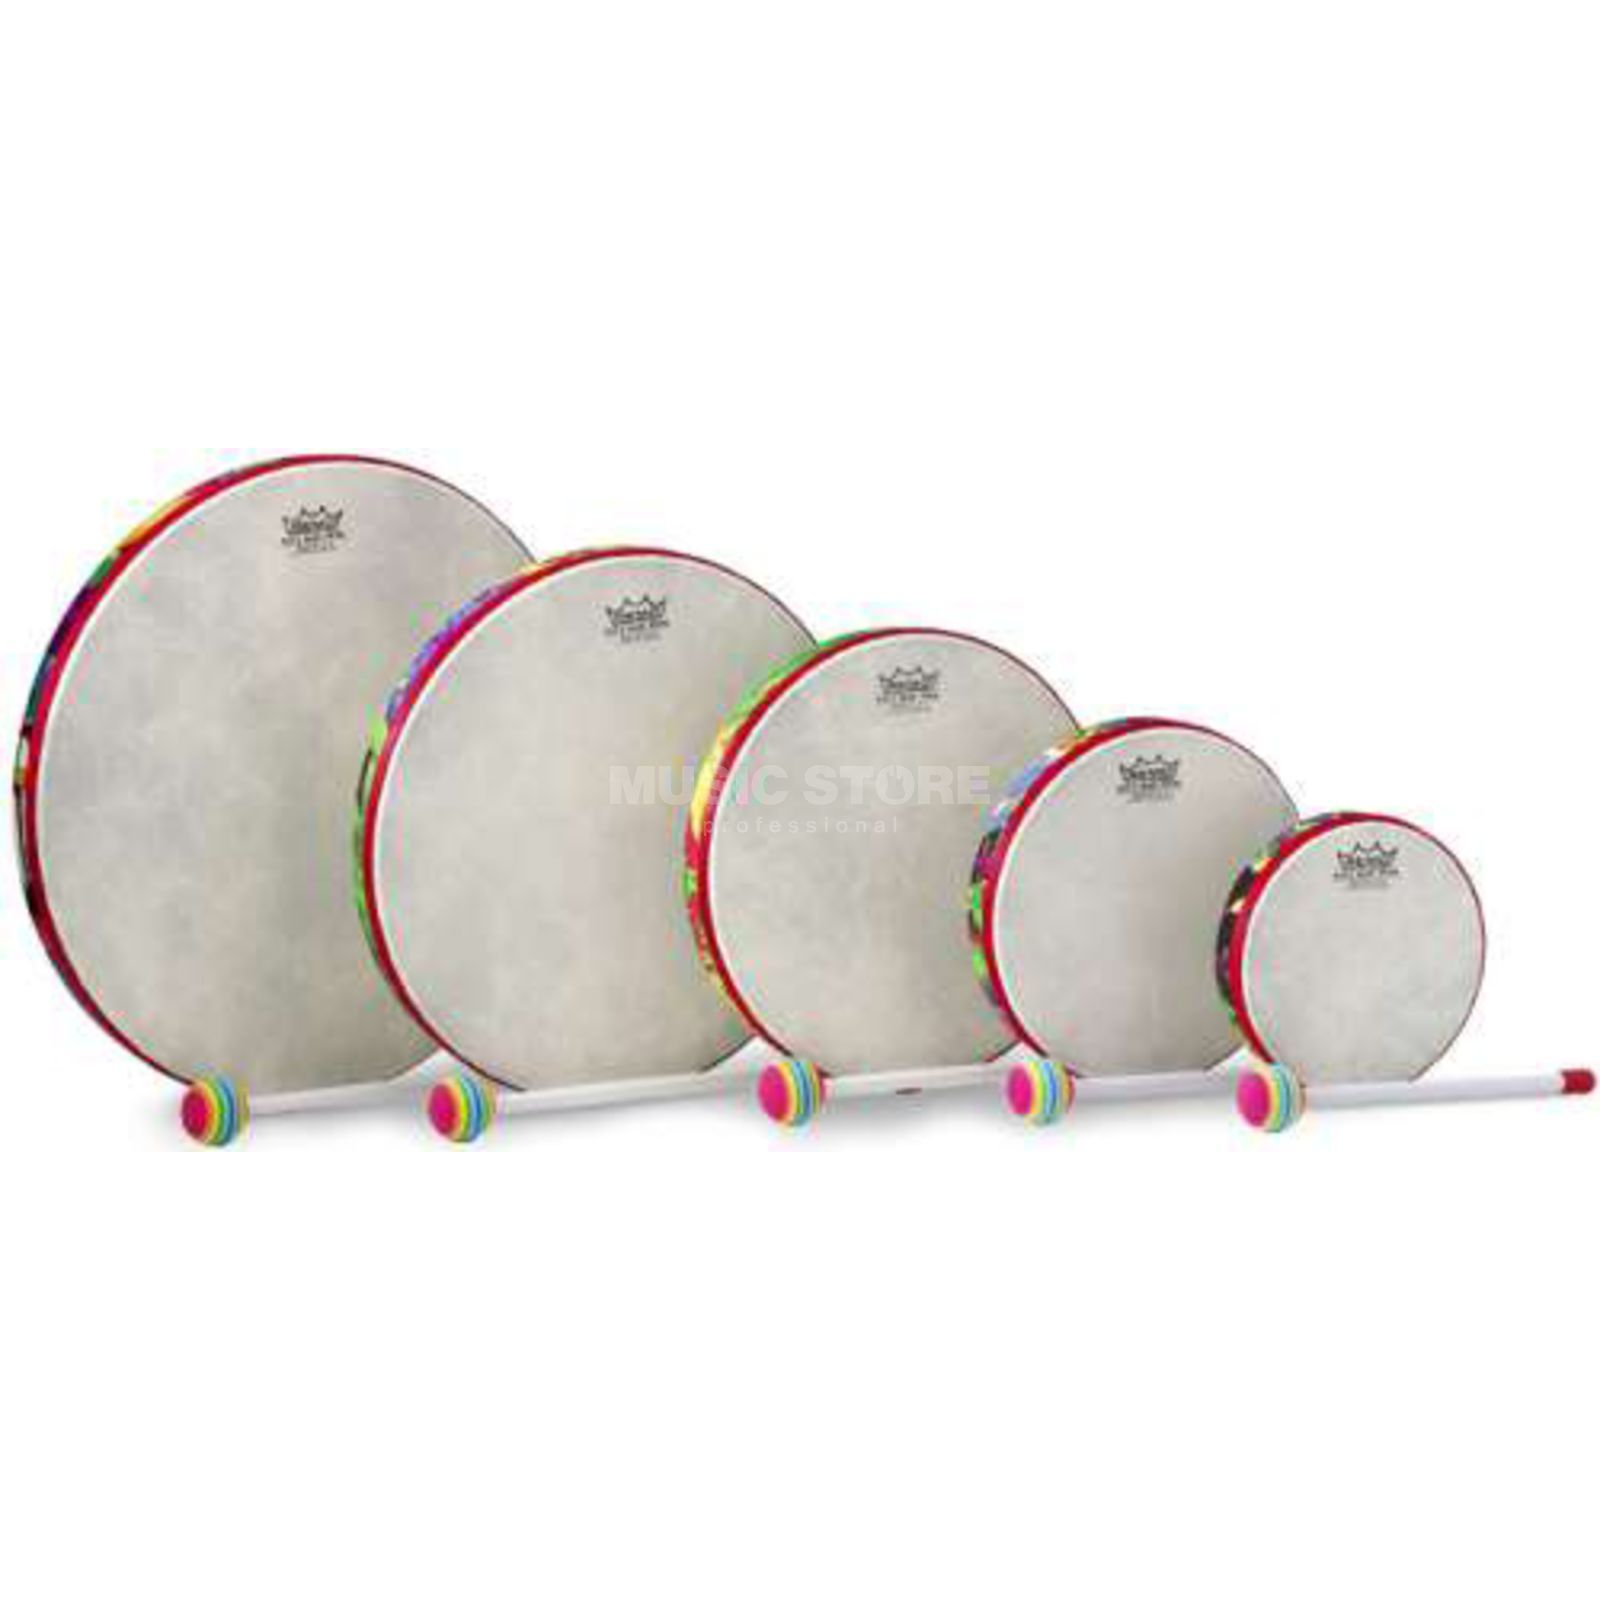 Remo Kids Percussion, 5pc Hand Drum Set Produktbillede